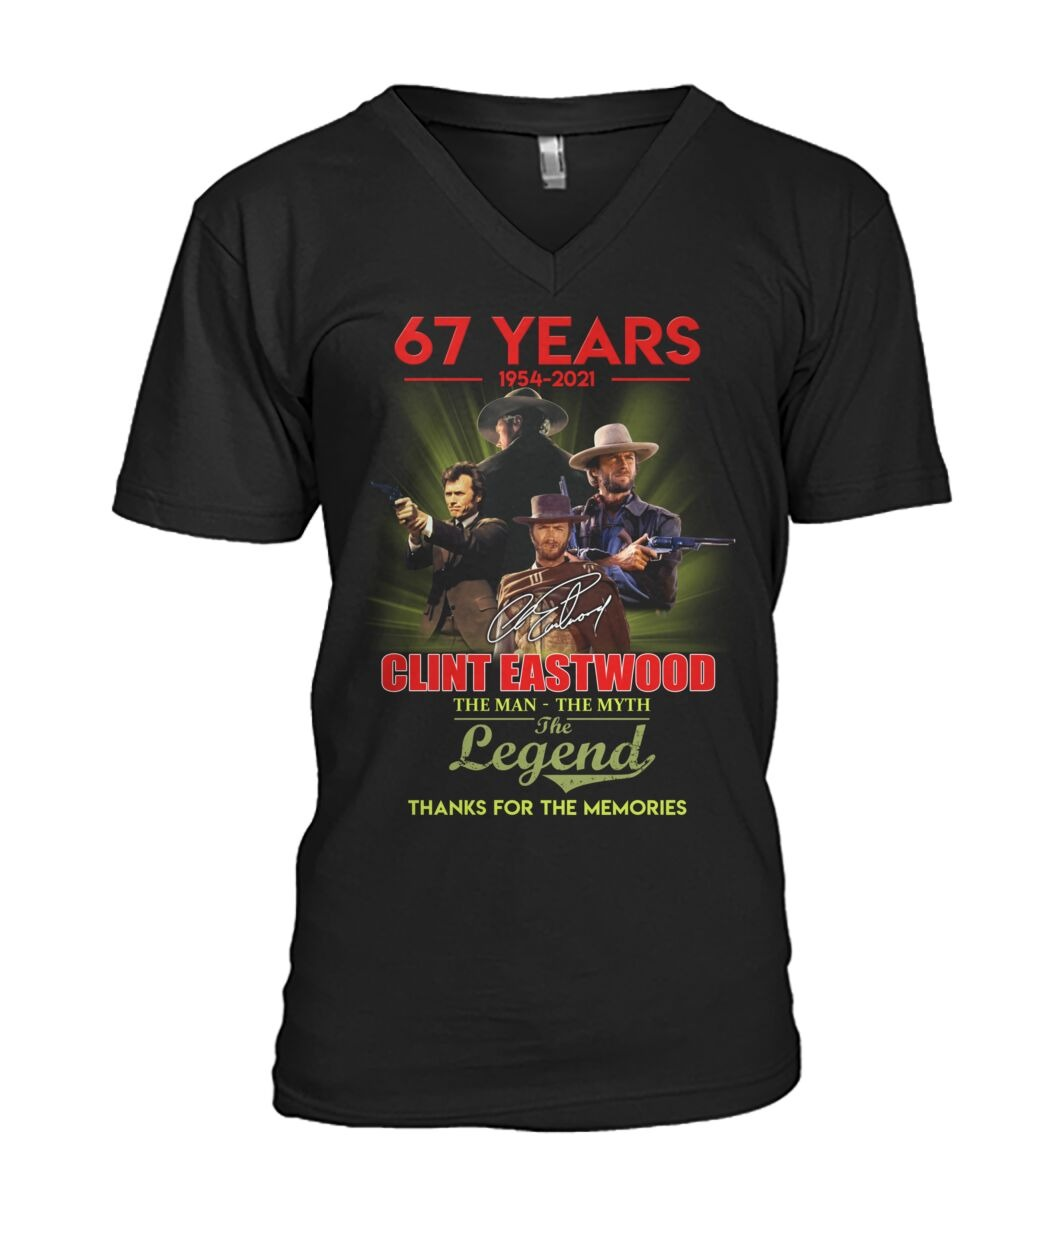 Clint Eastwood 67 years the man the myth the legend thanks for memories v-neck